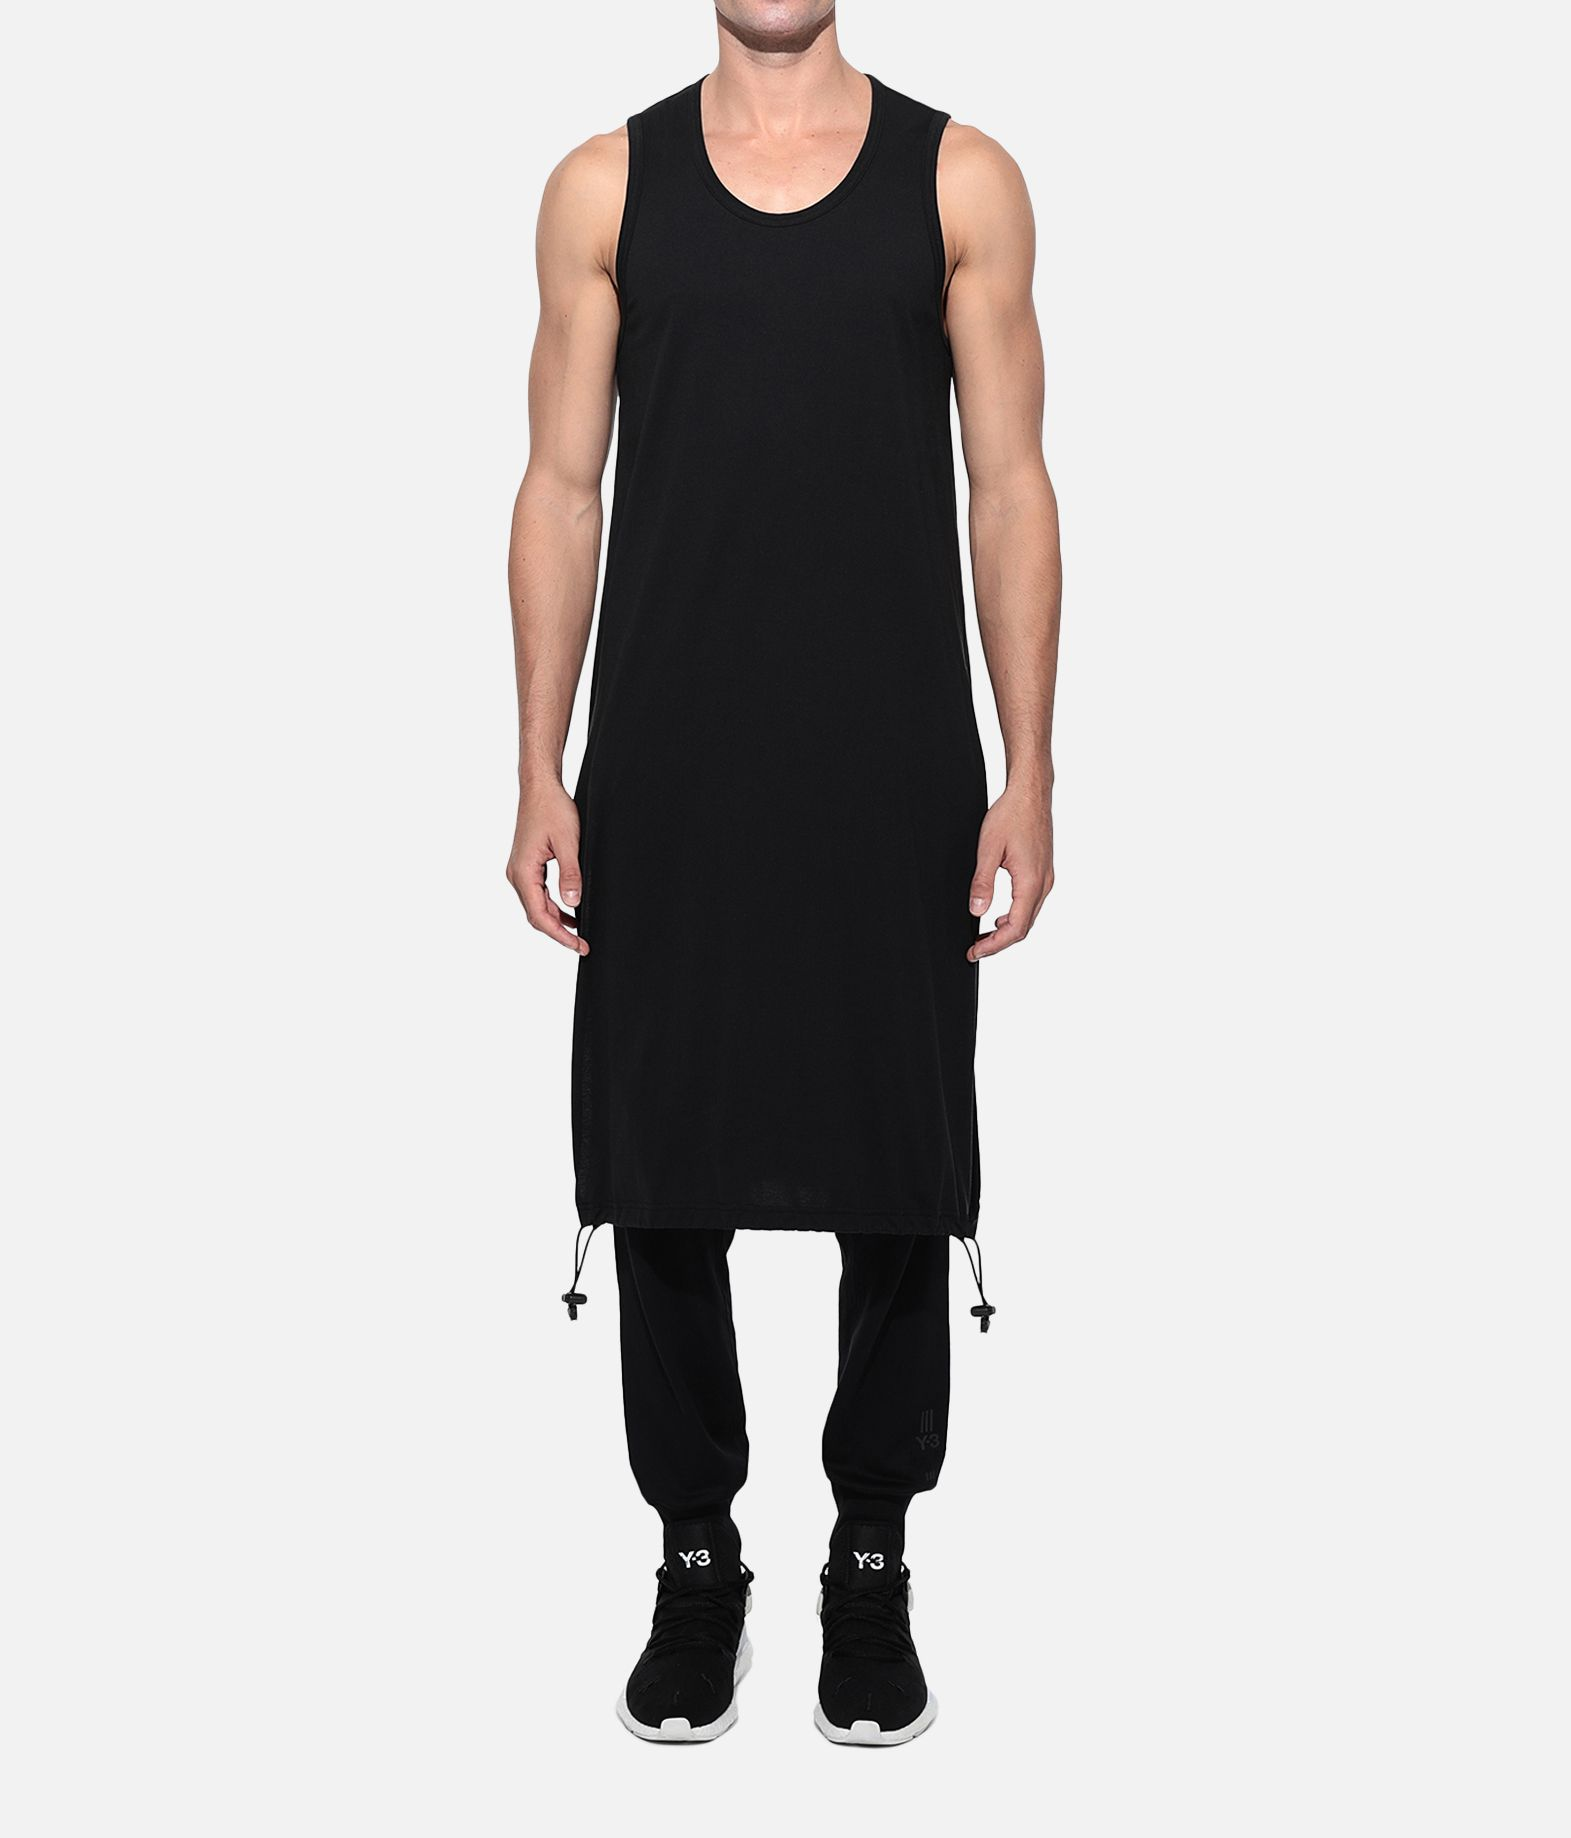 Y-3 Y-3 Drawstring Long Tank Top  Canotta Uomo r